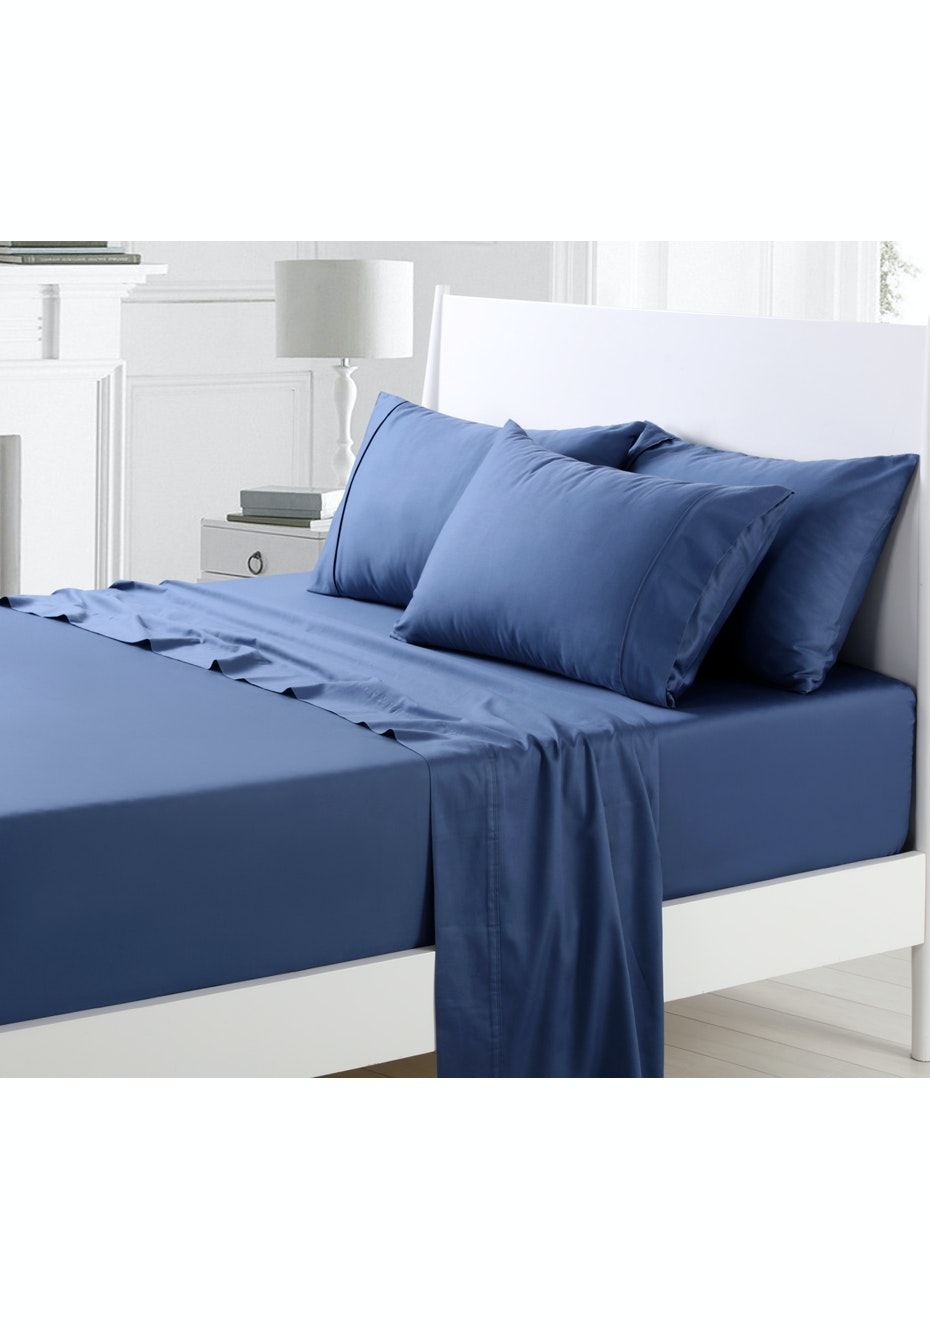 Monaco Blue 300TC Cotton Sateen Sheet Set - King Bed